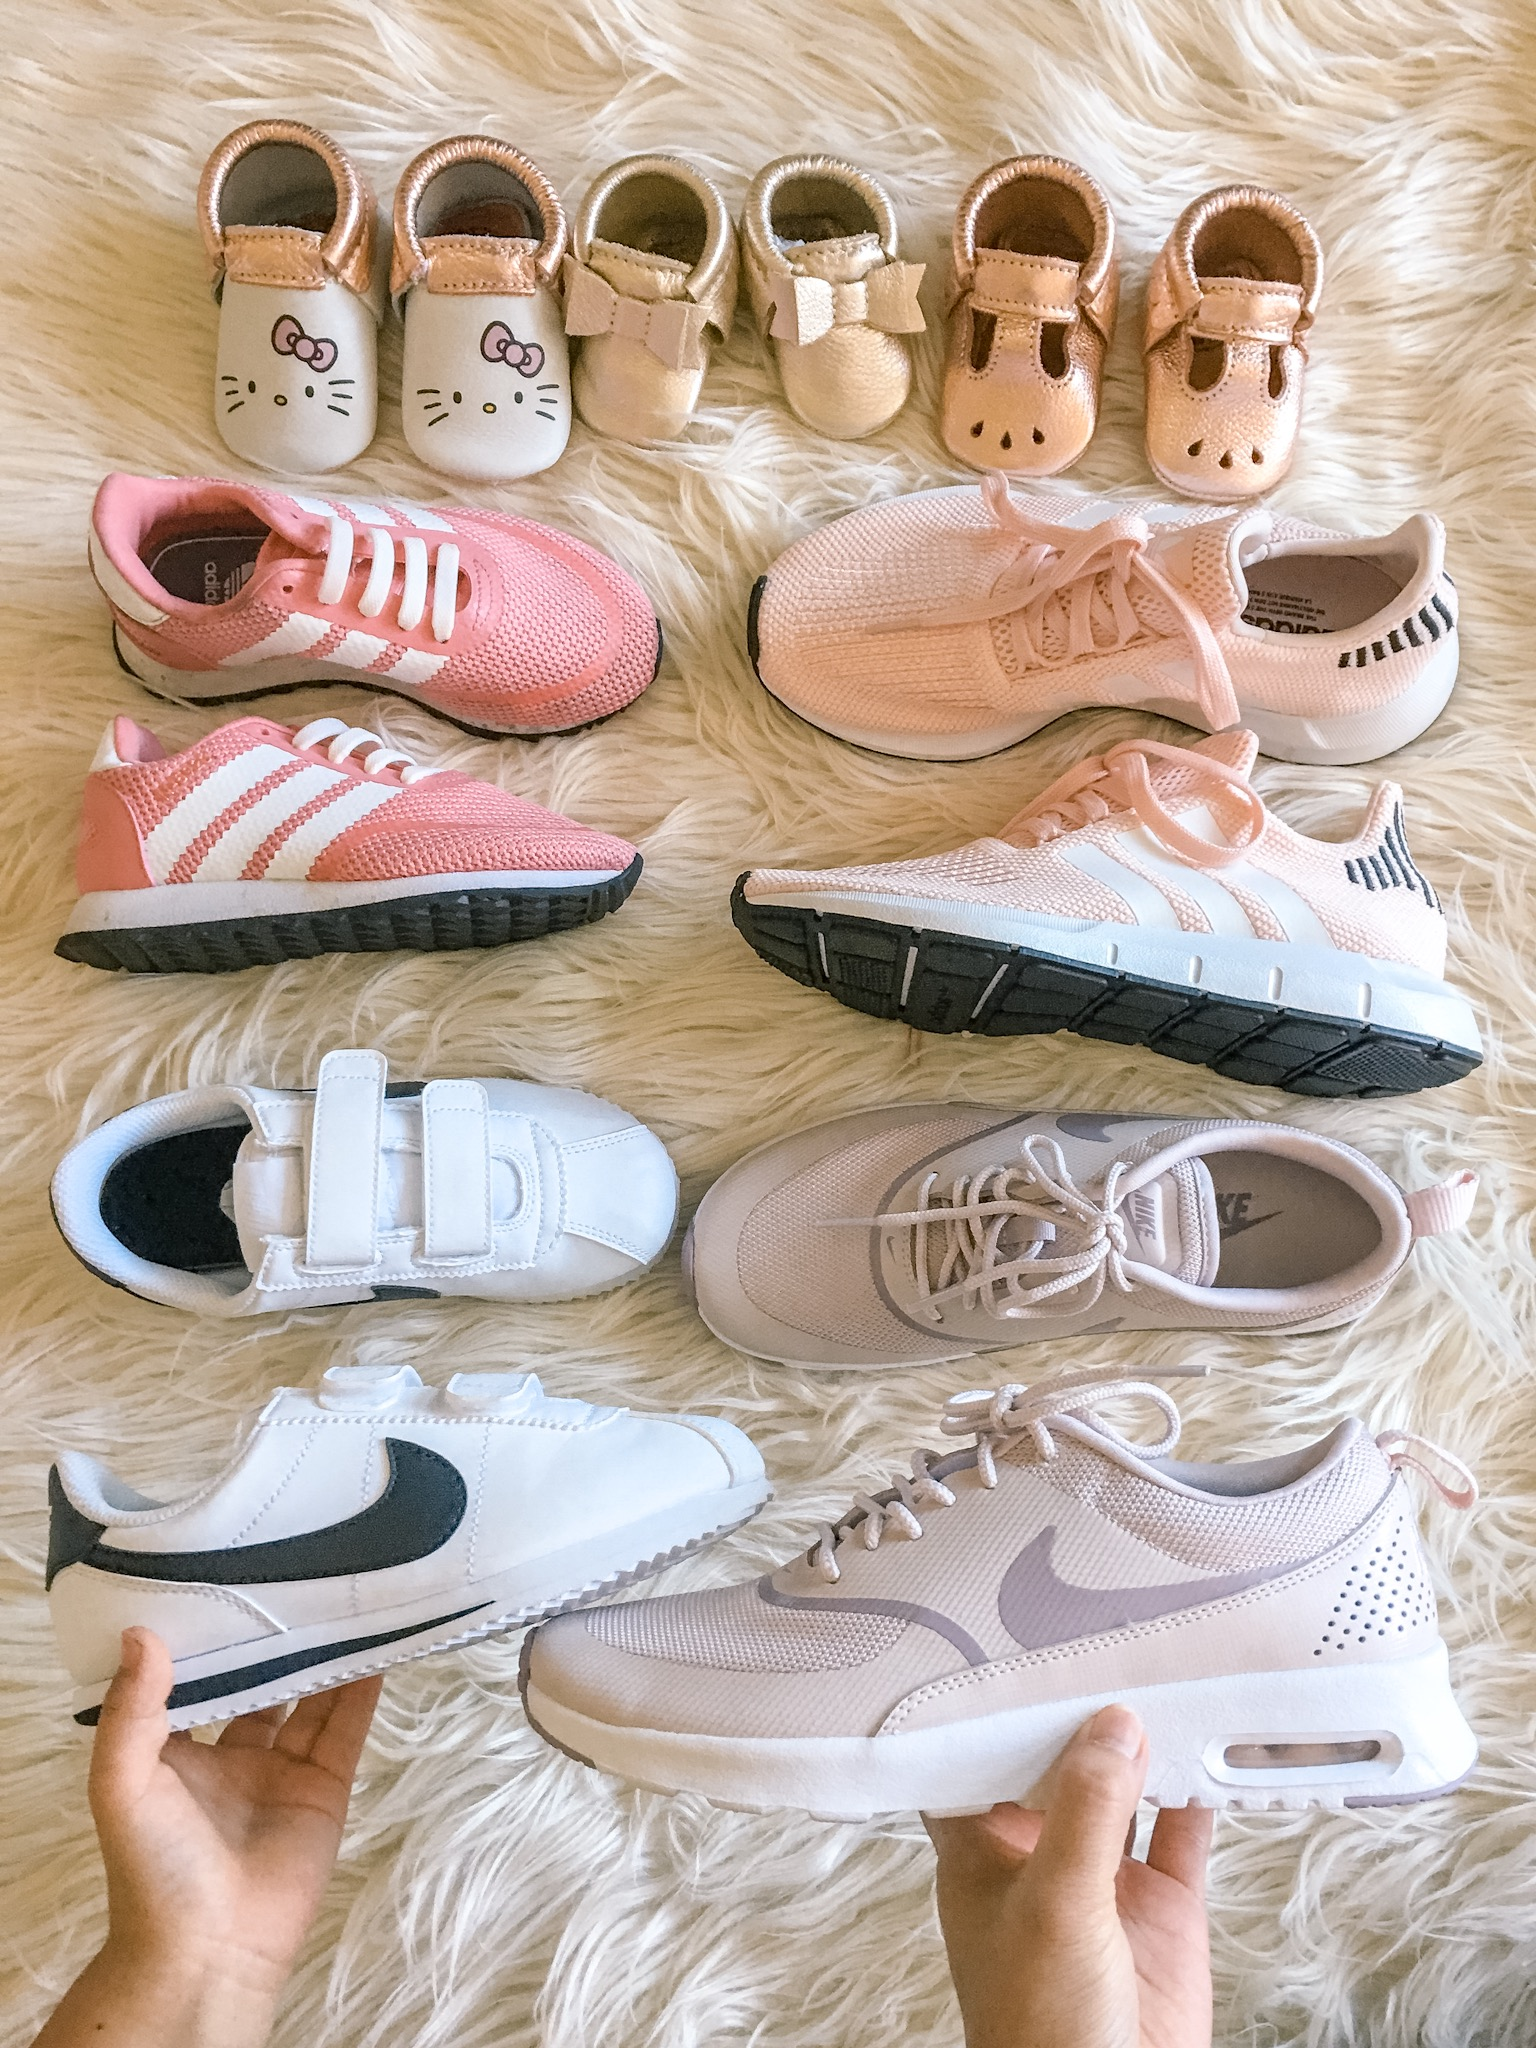 b199f066ec62 The best shoes to buy – Nordstrom Anniversary Sale 2018. Nike shoes for  mommy and daughter